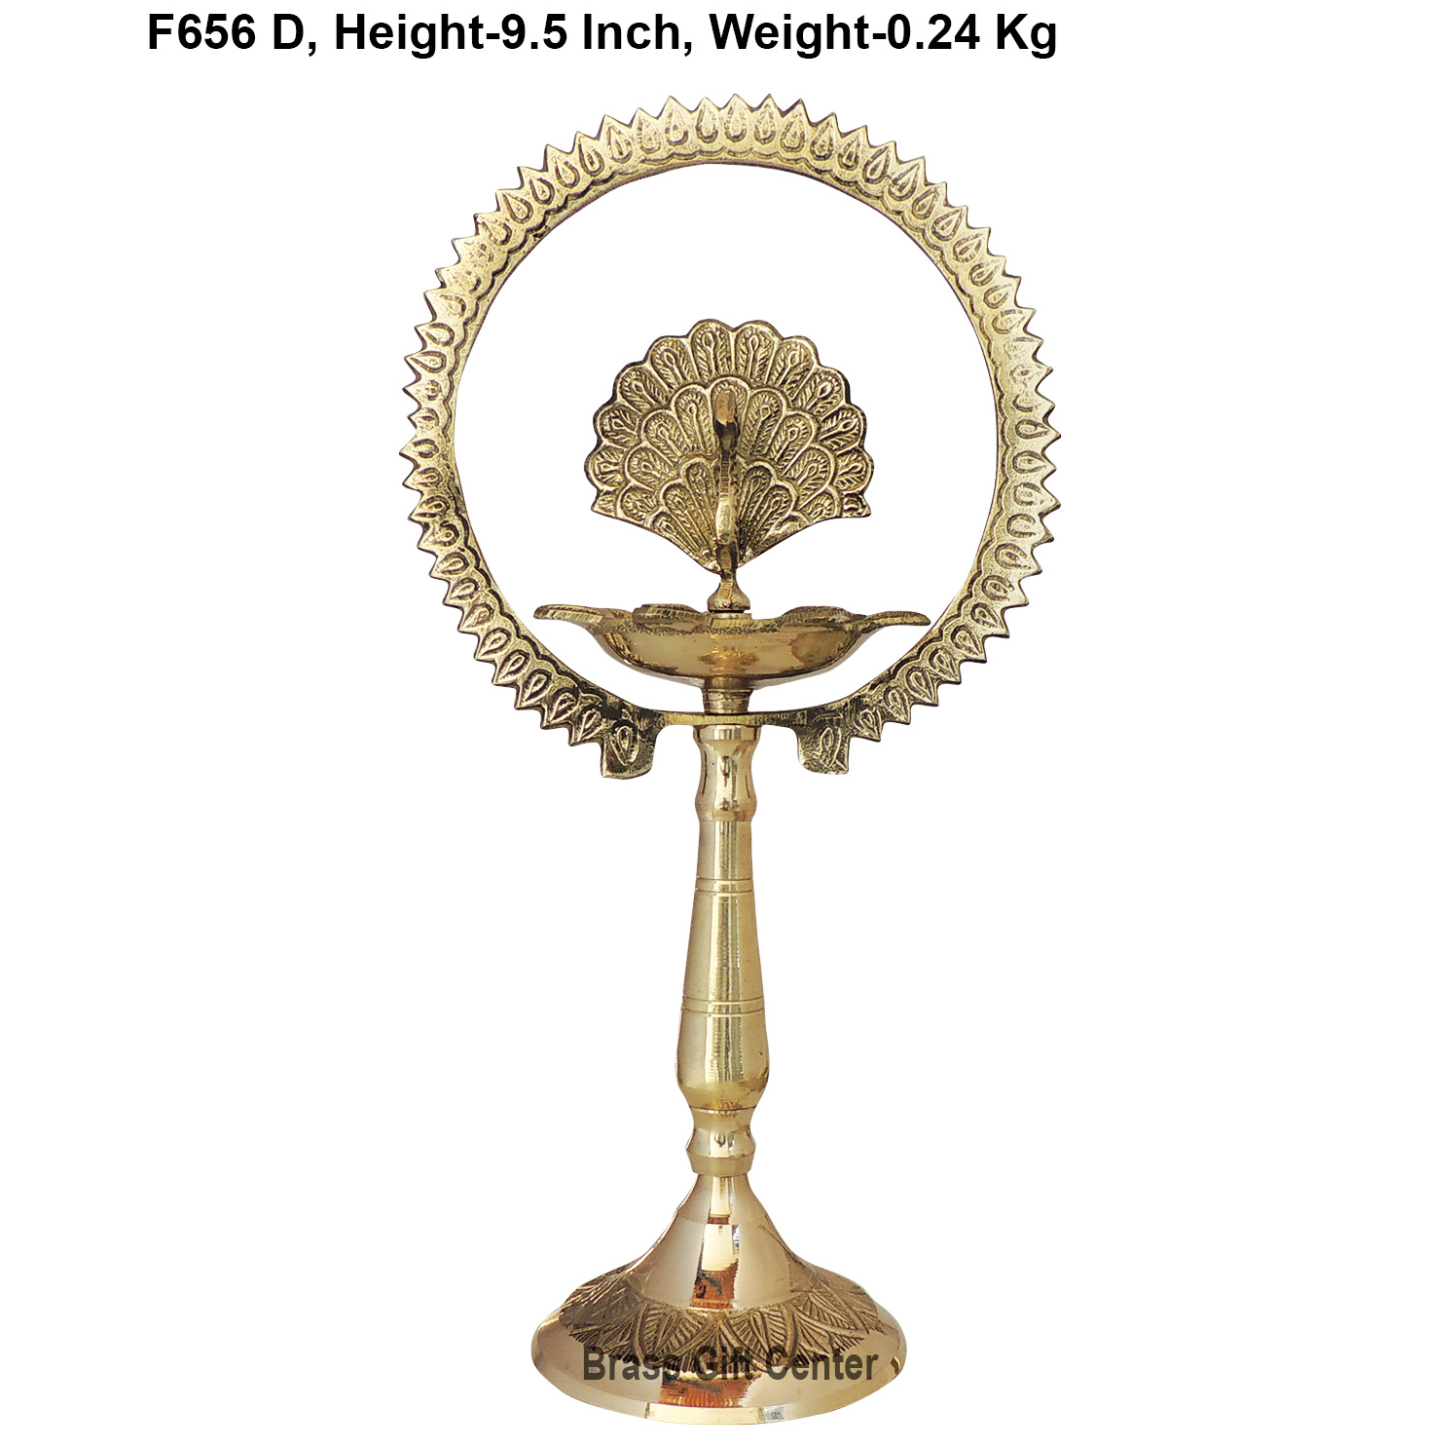 Brass Table Dcor Oil Lamp Deepak With Brass Finish - Height 9.5 Inch (F656 D)